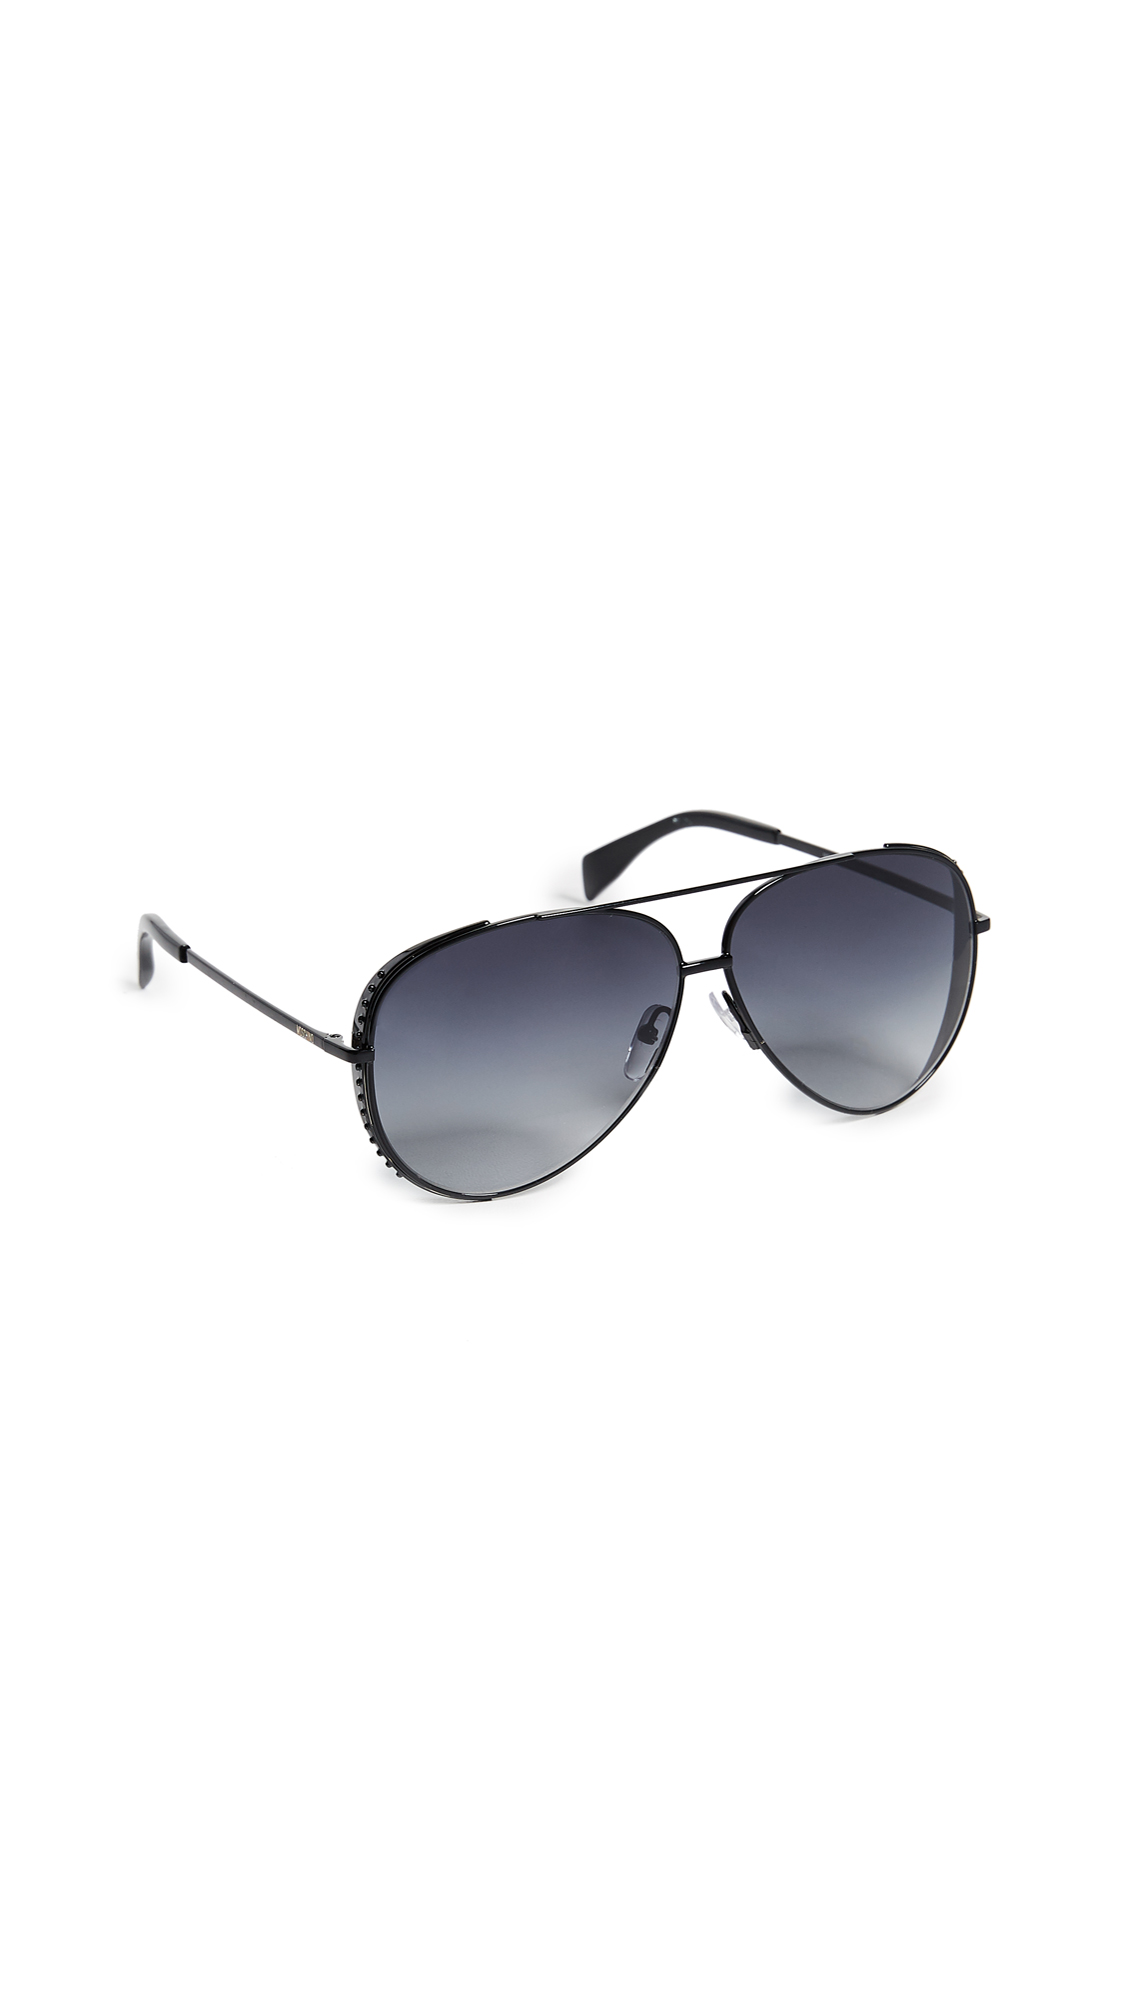 Moschino Aviator Sunglasses - Black/Dark Grey Gradient